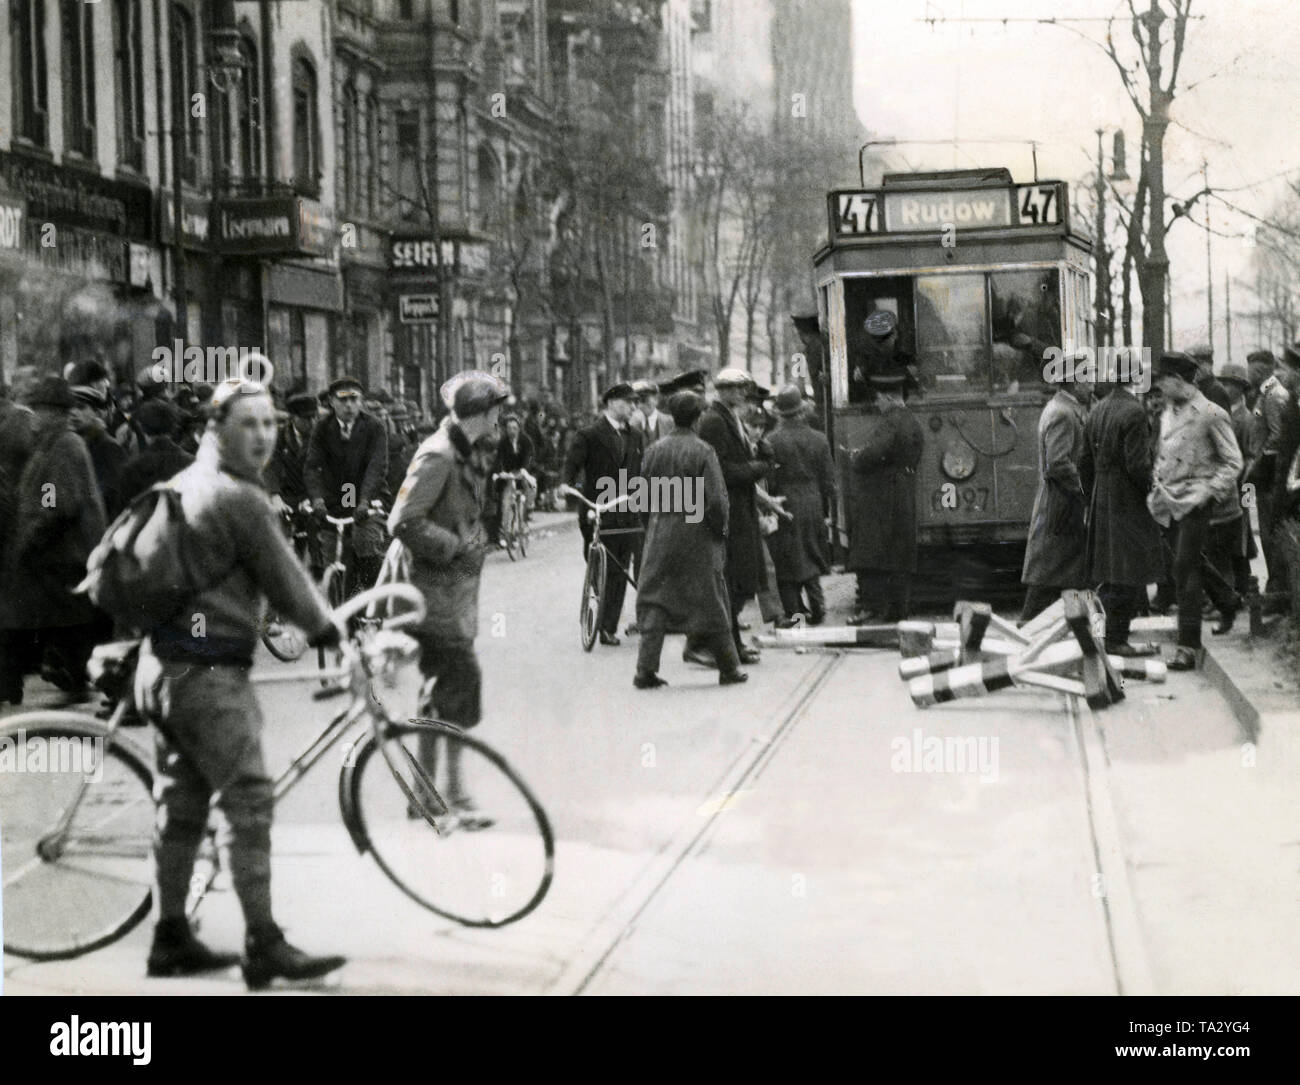 The disturbance of local transport was a popular way of demonstration, as it was possible to get the most attention and the strongest propaganda success with it. This was often the case in the working-class districts Wedding and Neukoelln in Berlin. - Stock Image